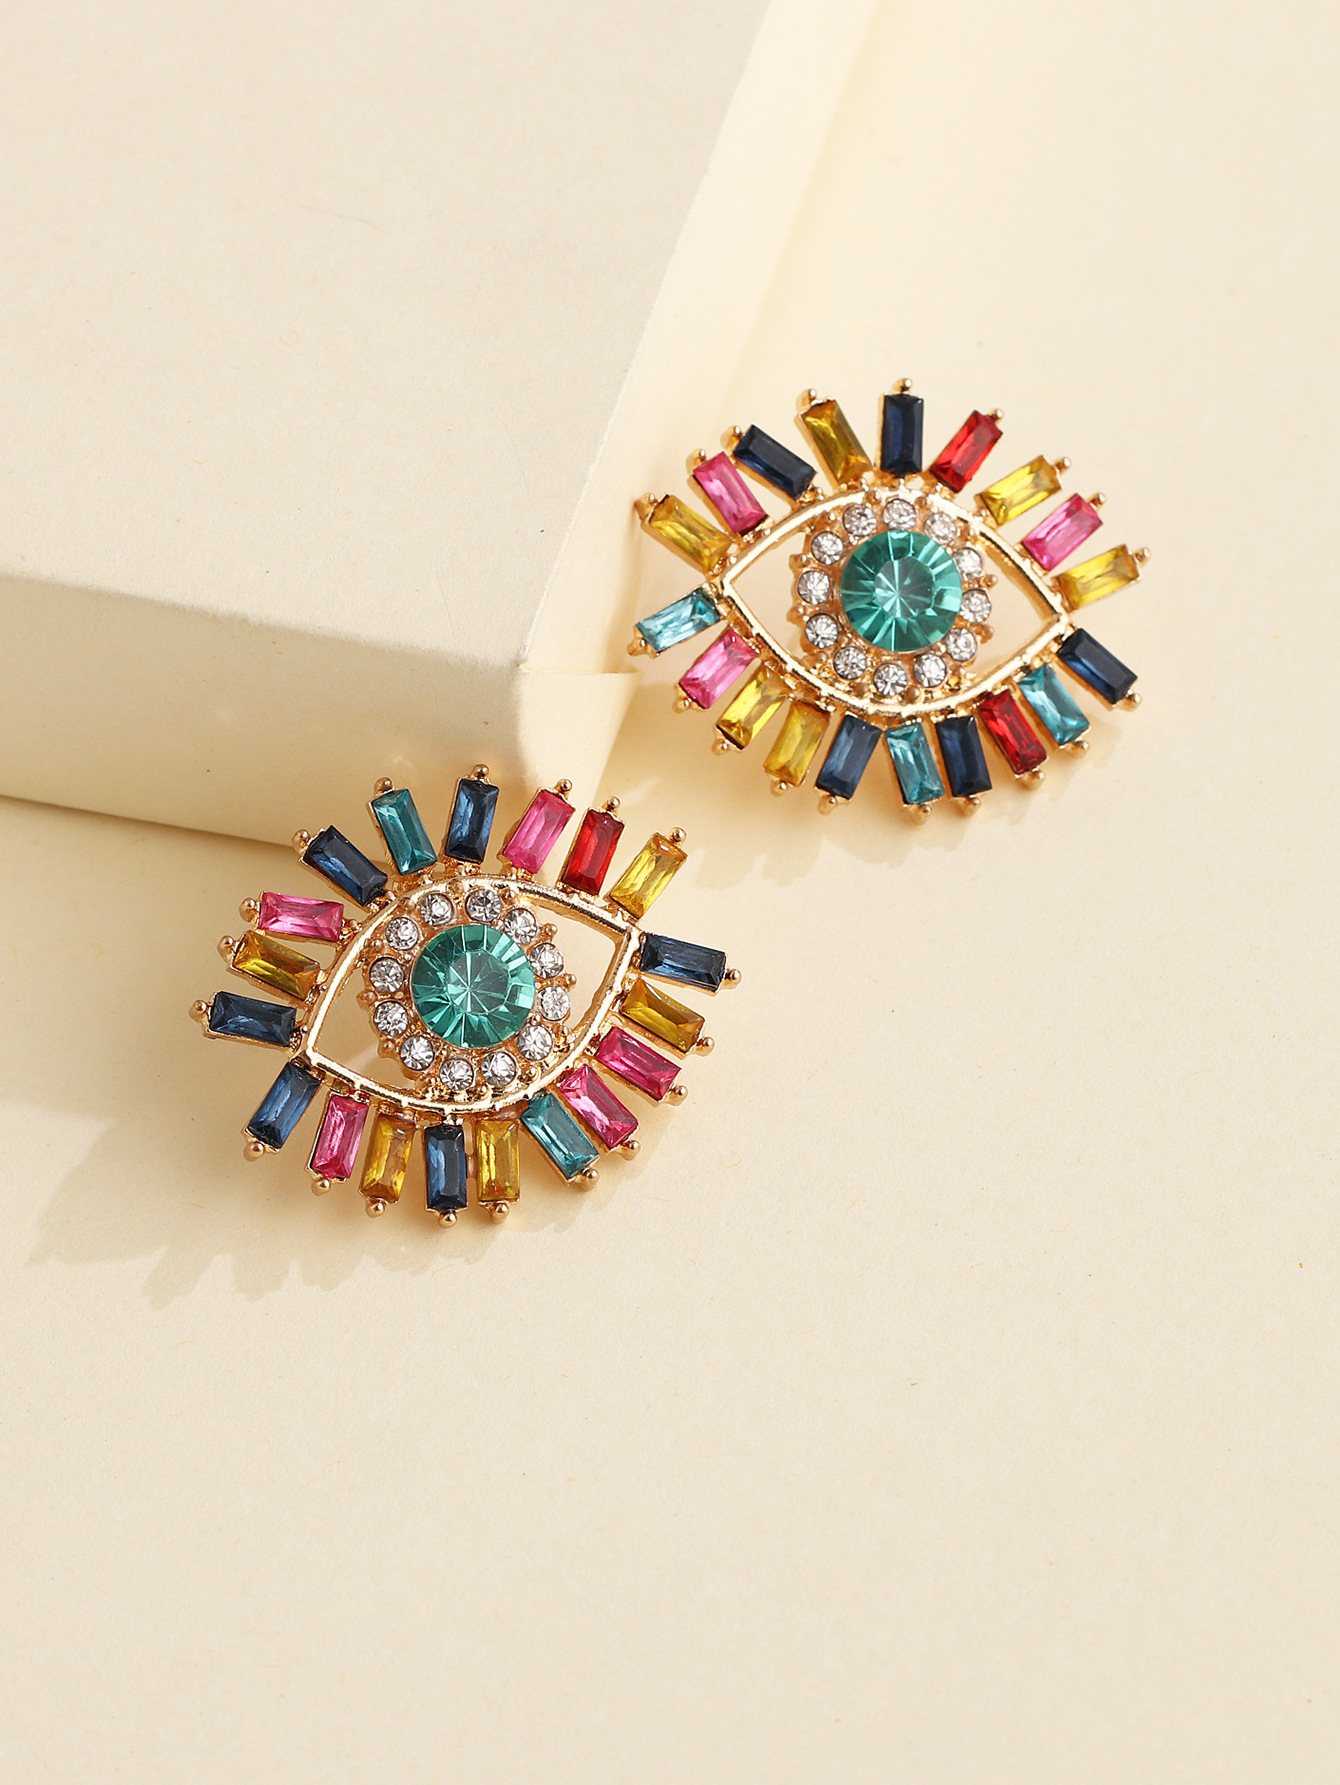 new angel's eye earrings Korean personality tide French demon earrings wholesale nihaojewelry NHJJ220045